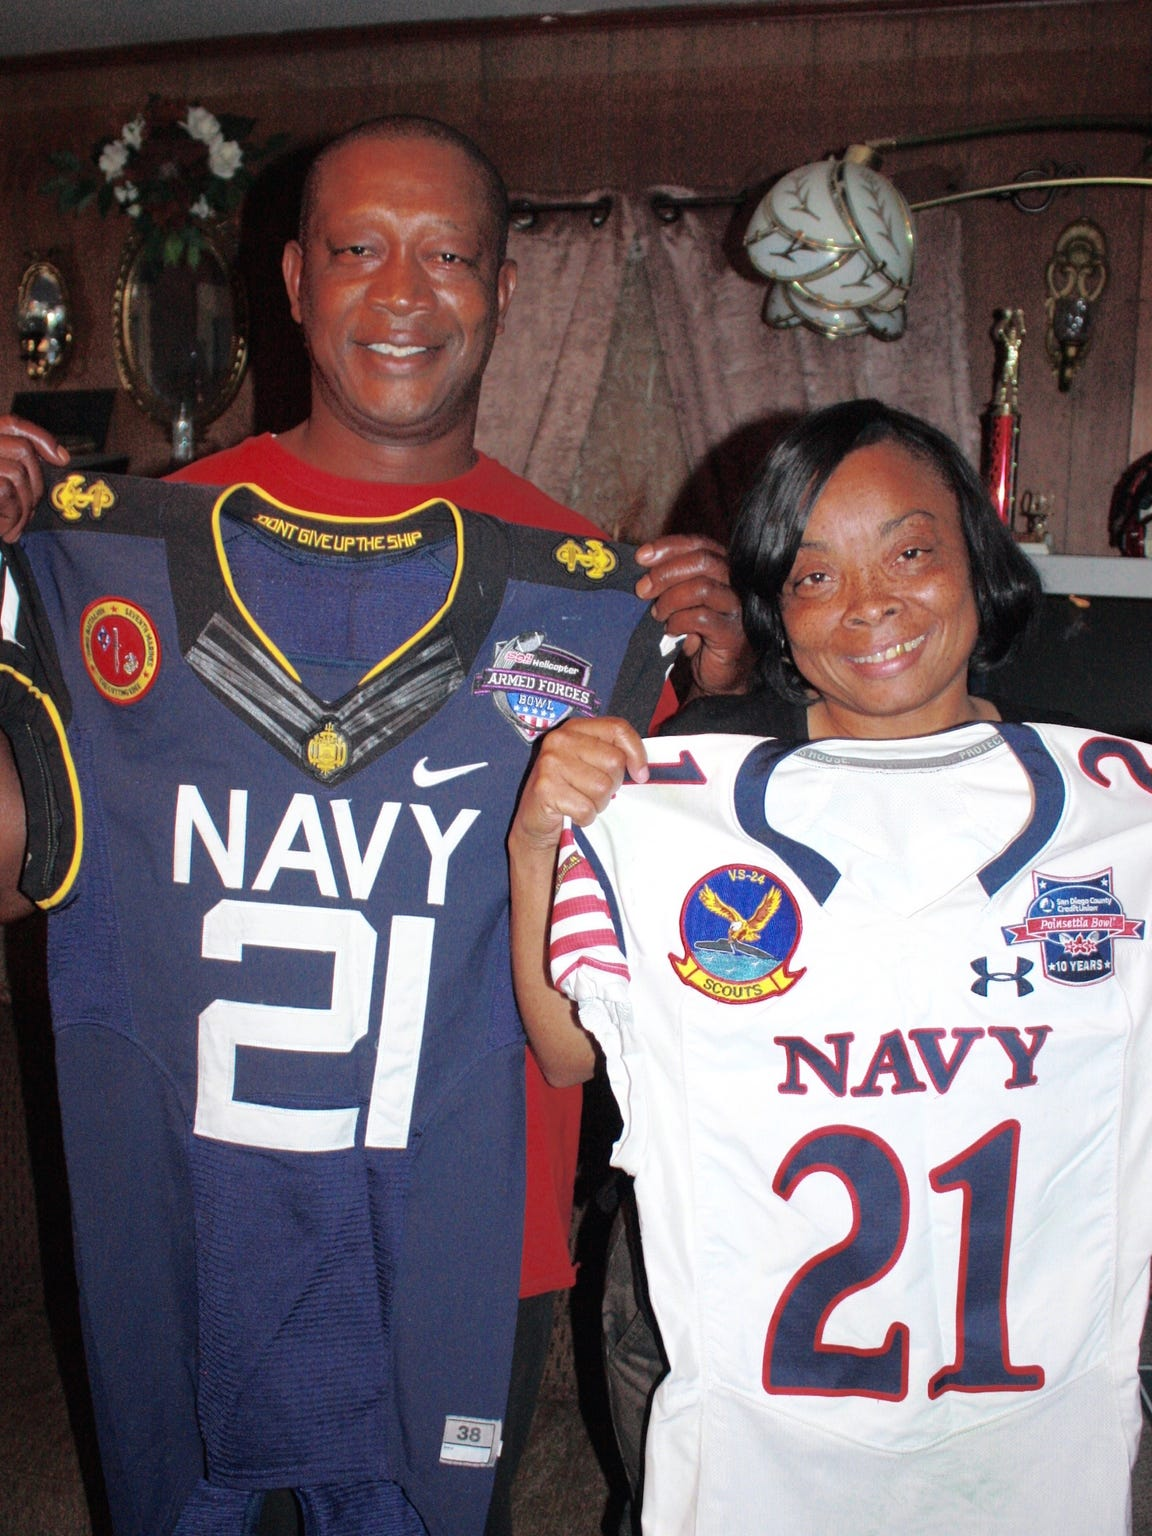 DeBrandon Sanders' dad and mom, Steven Harris and Carrie Sanders Harris of Itta Bena, hold the jerseys worn by their son in Navy's bowl victories the past two seasons. Navy won the Armed Forces Bowl in Fort Worth in 2013 (blue jersey) and the 2014 Poinsettia Bowl in San Diego.